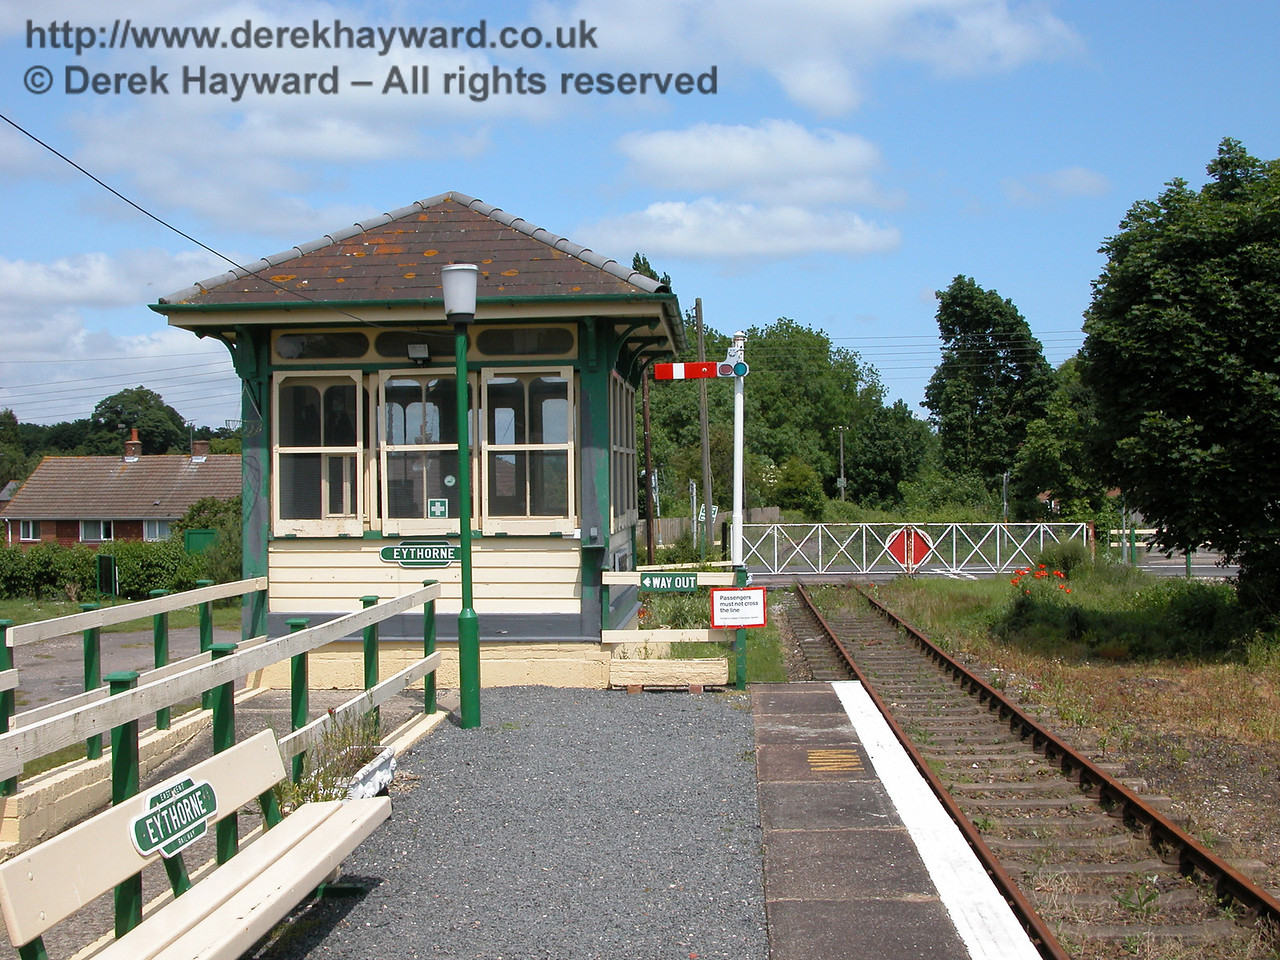 10 years earlier, Eythorne Station looking east on 06.06.2005